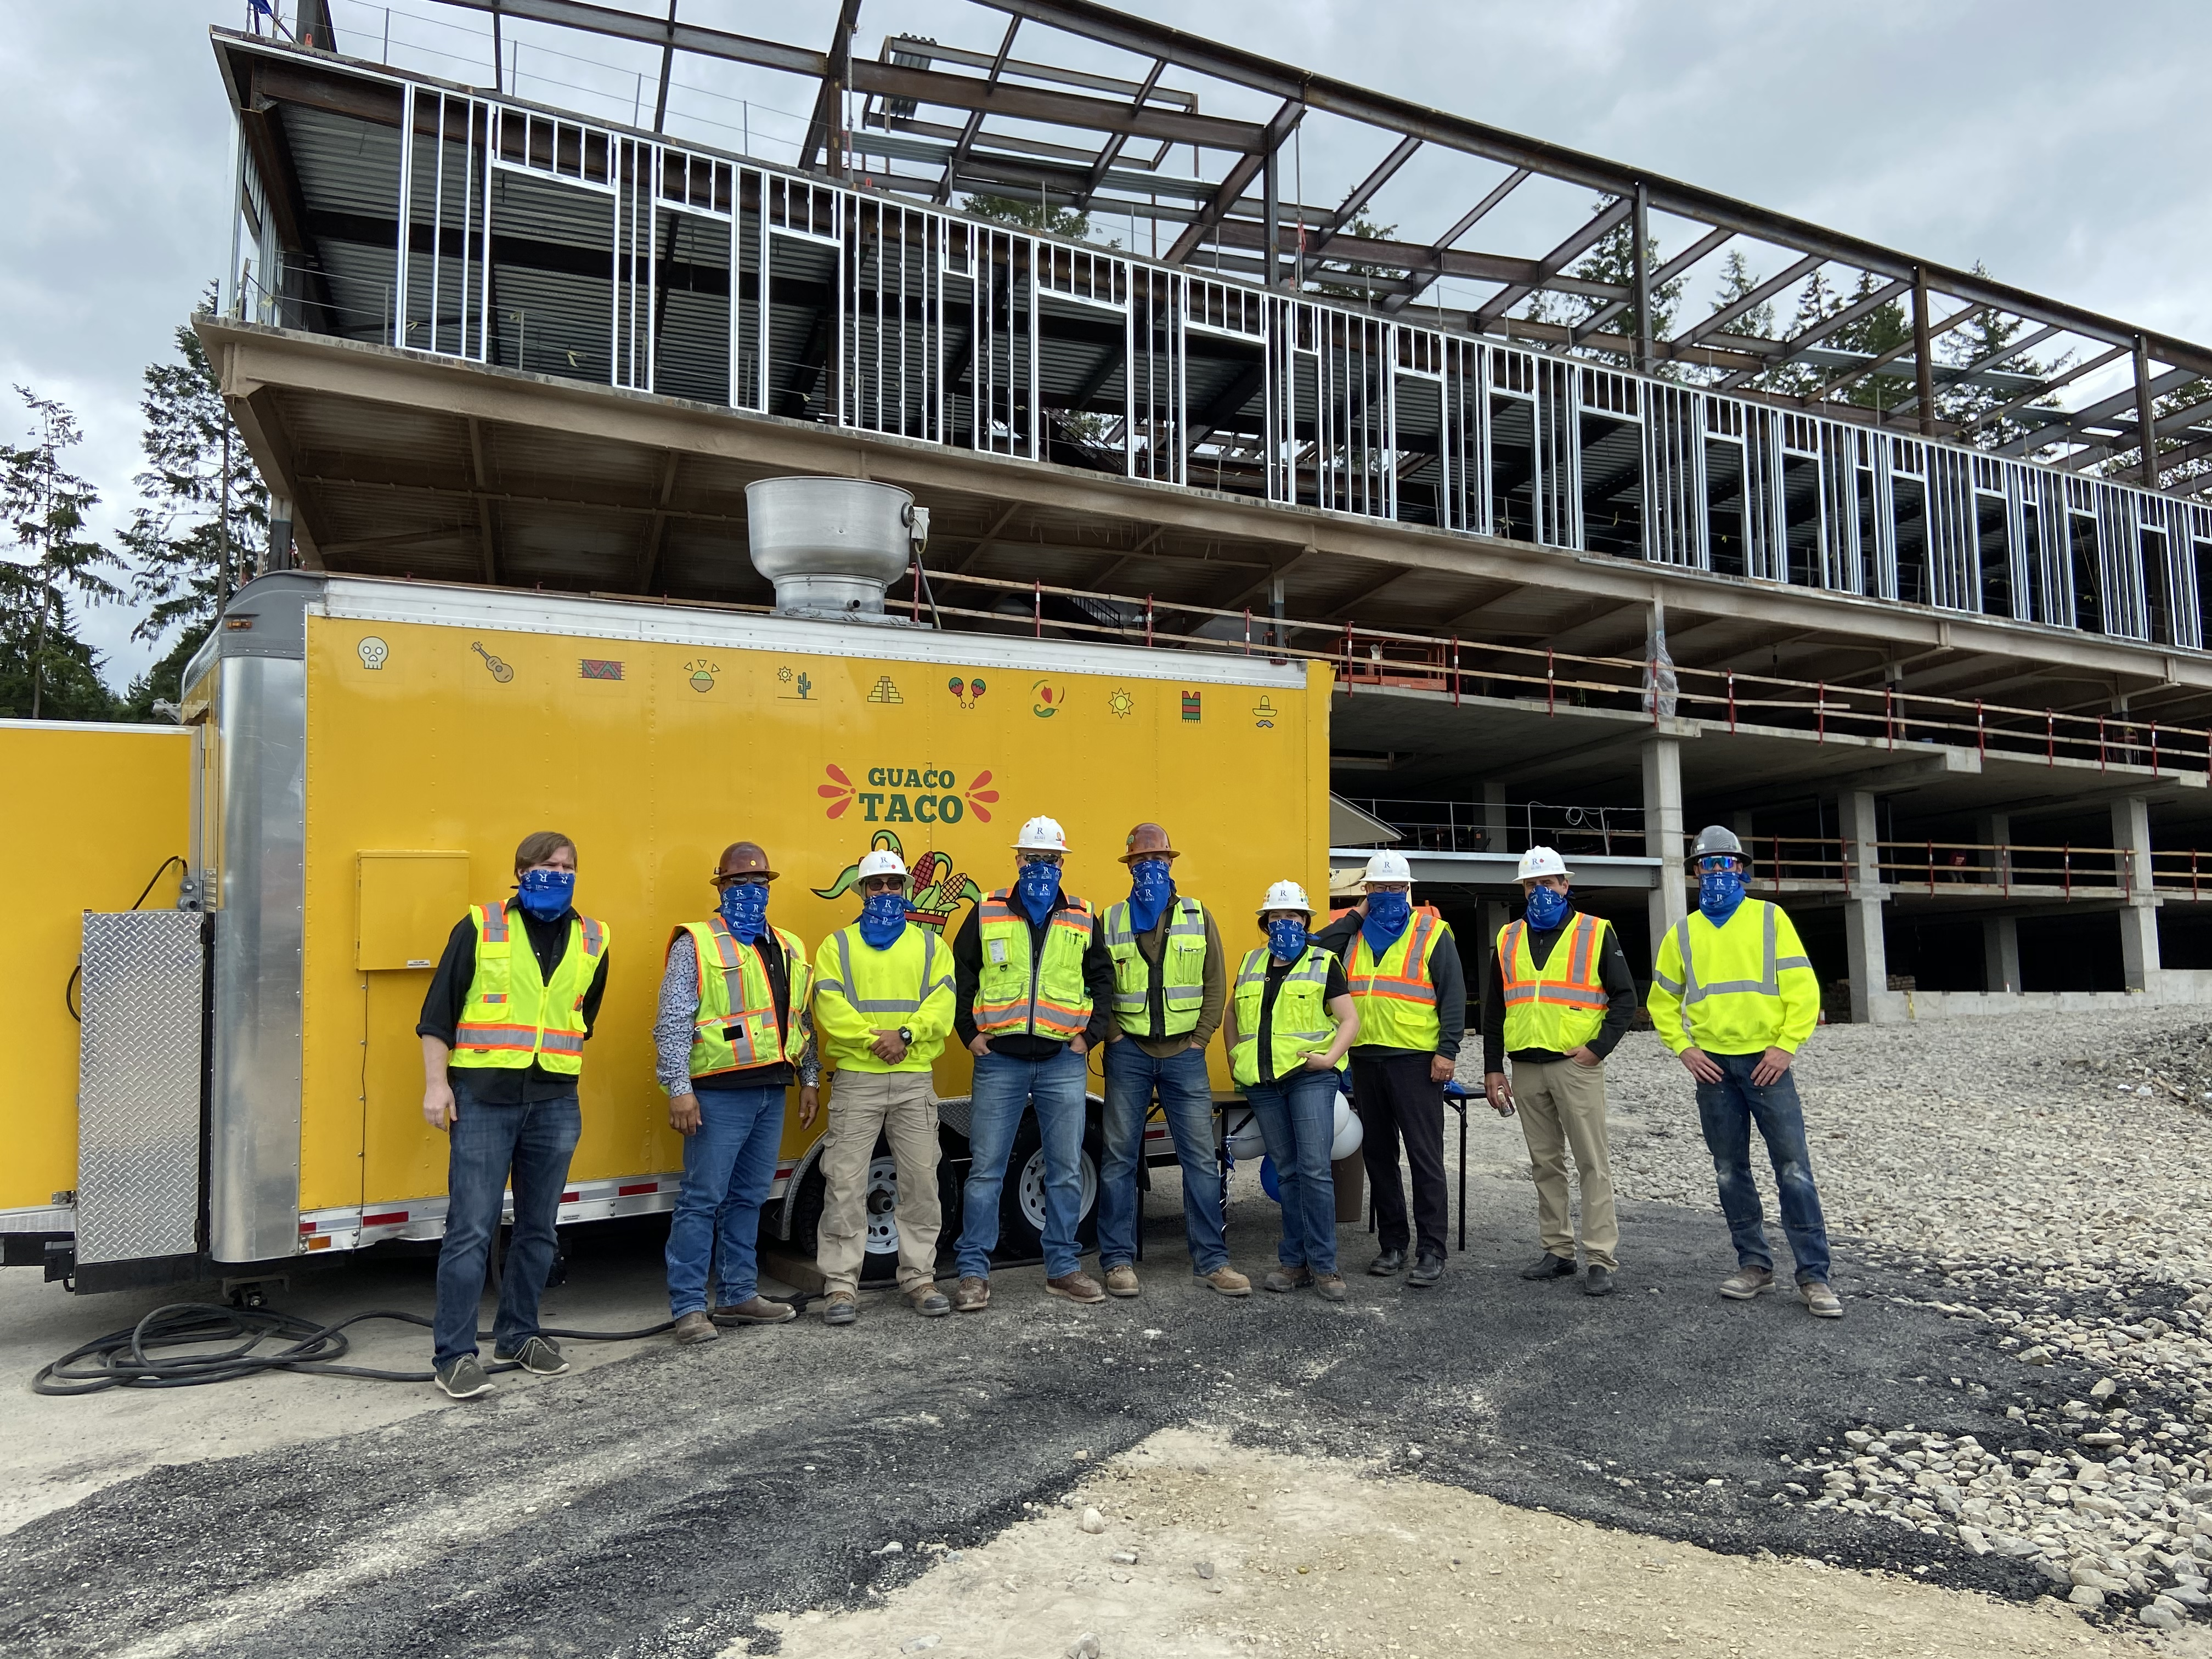 Harrison Specialty Care Clinic Celebrates Safety and Topping Out